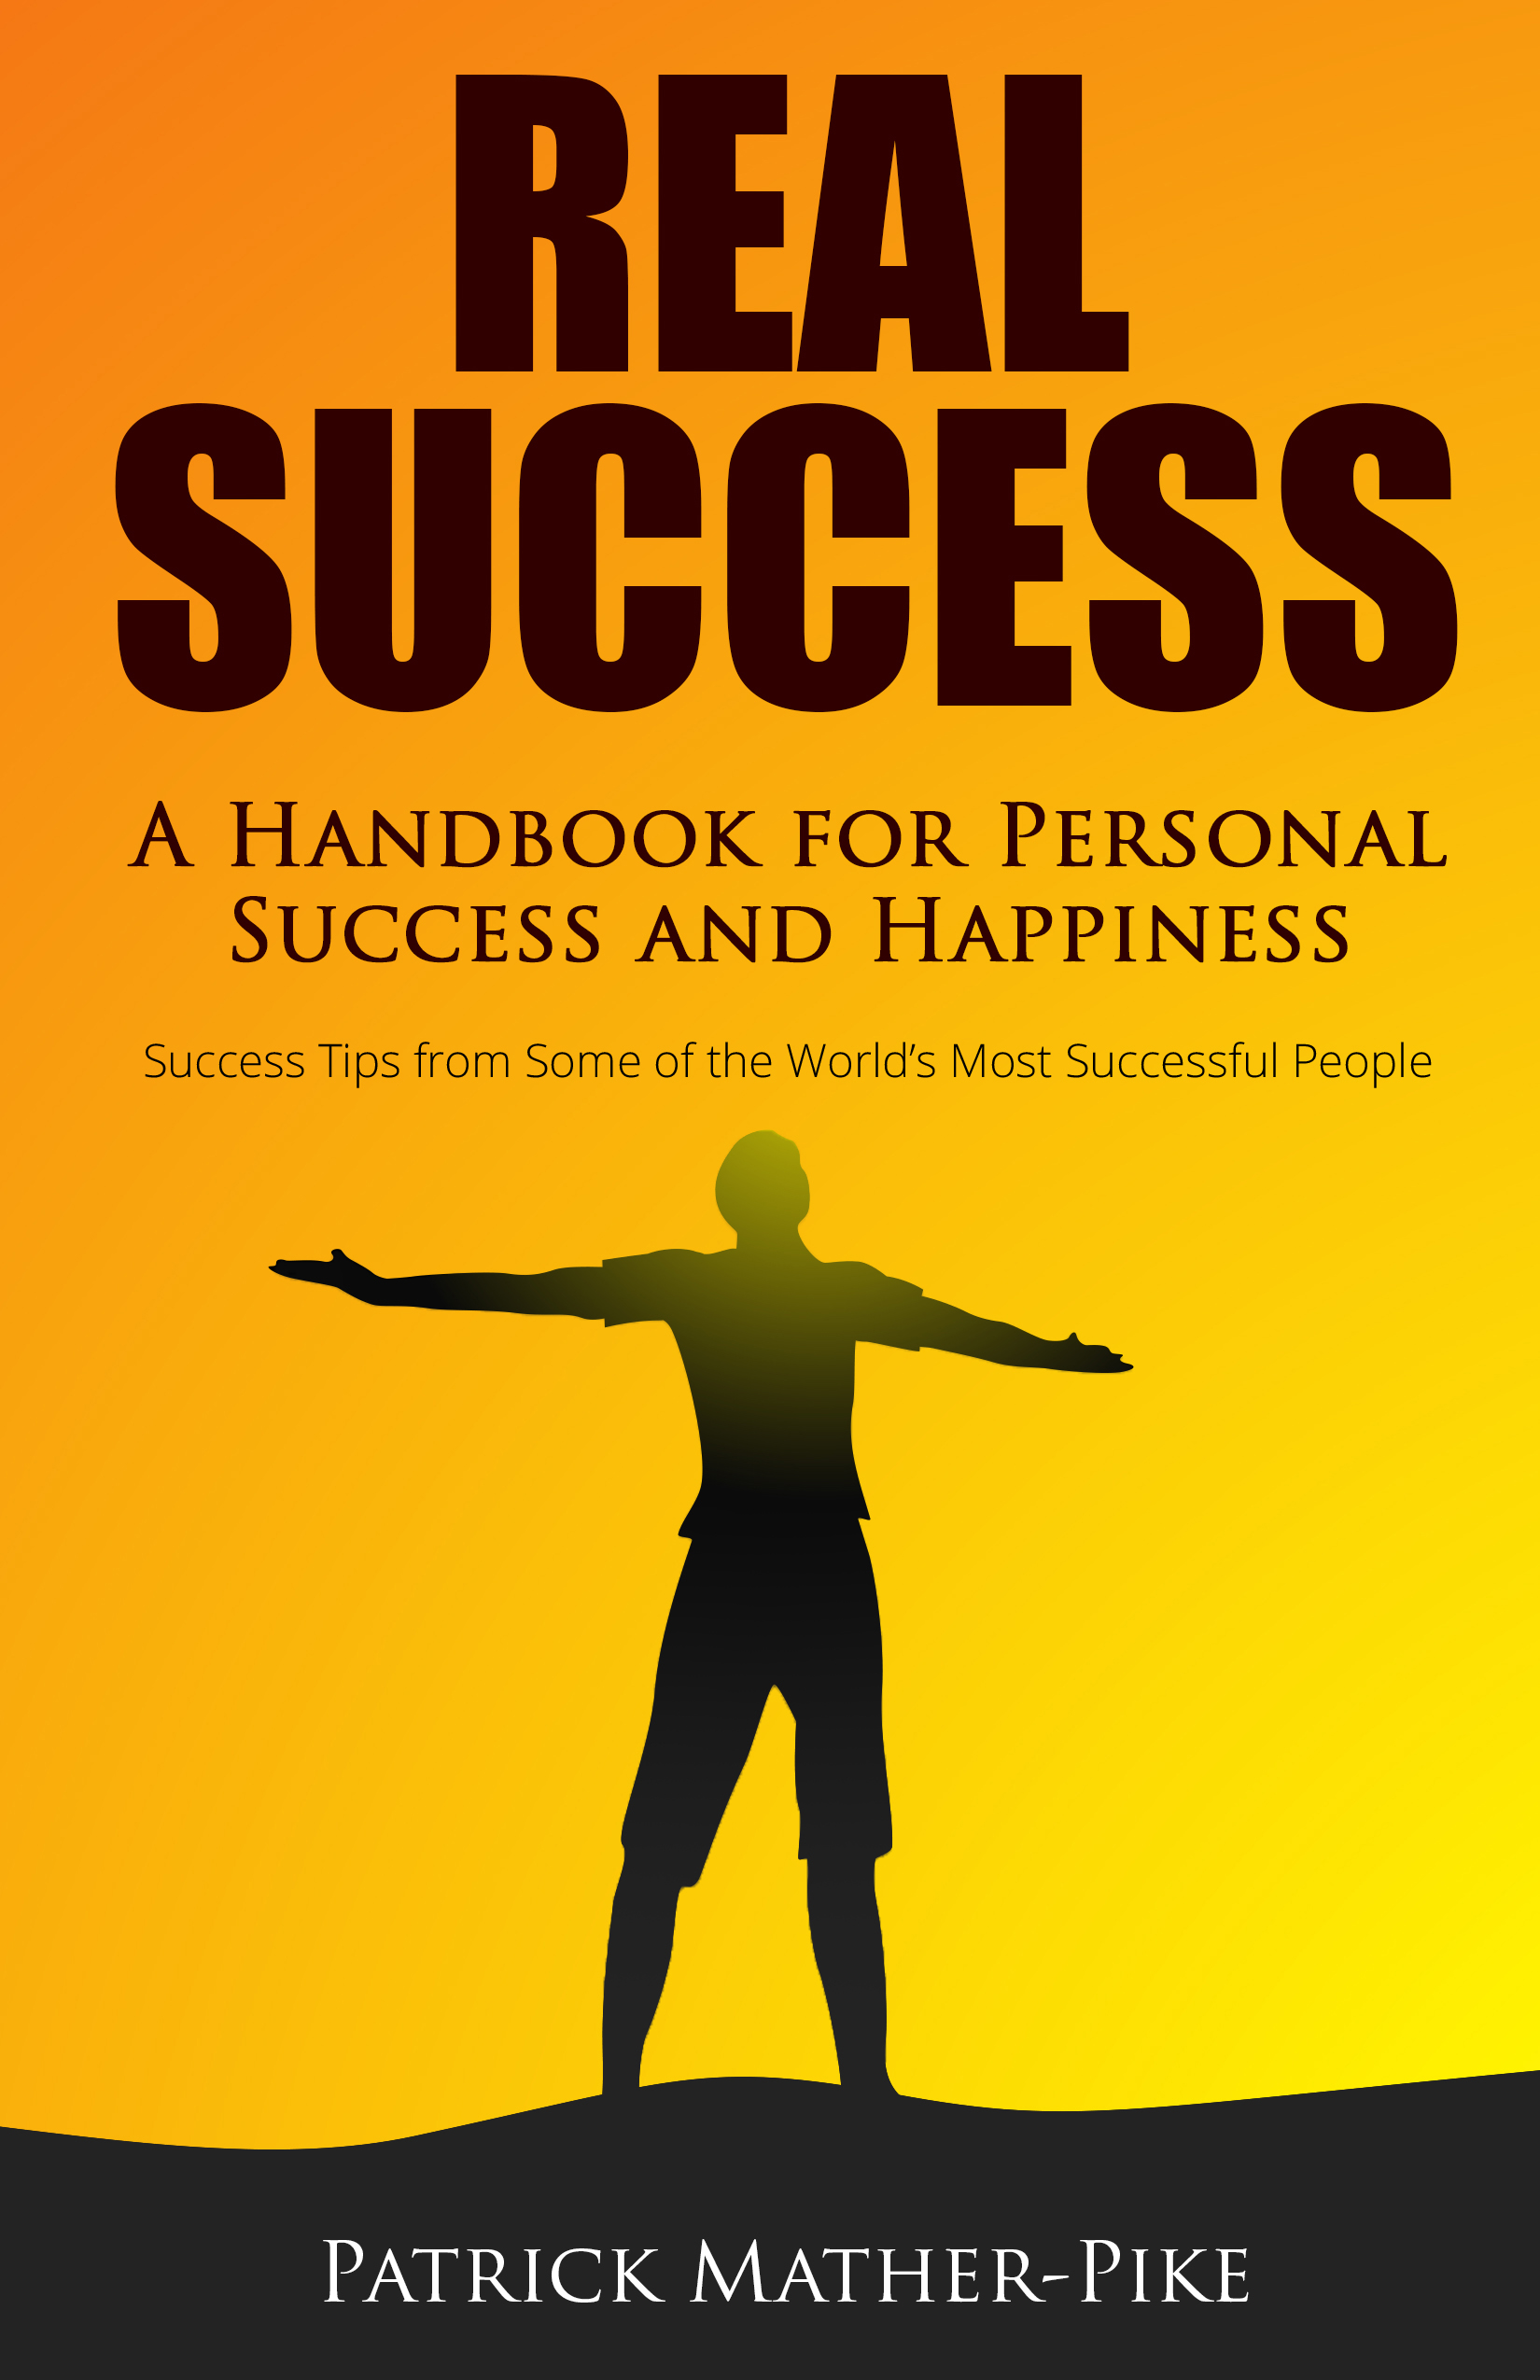 Real Success - By patrick mather-pike